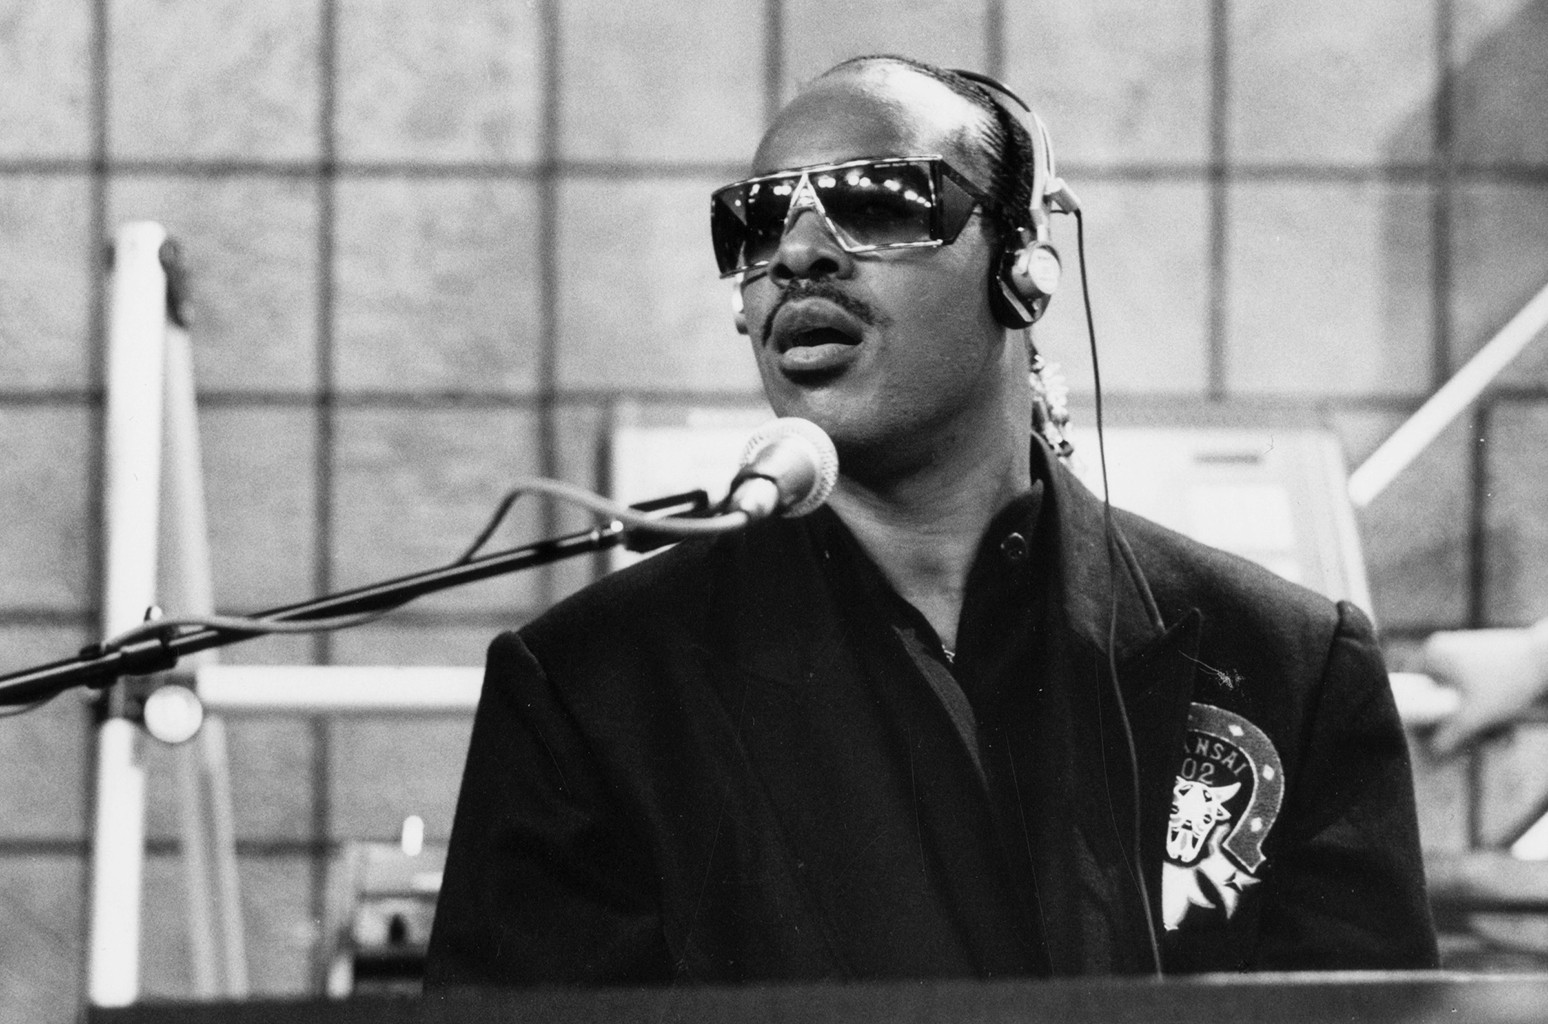 Stevie Wonder in 1986